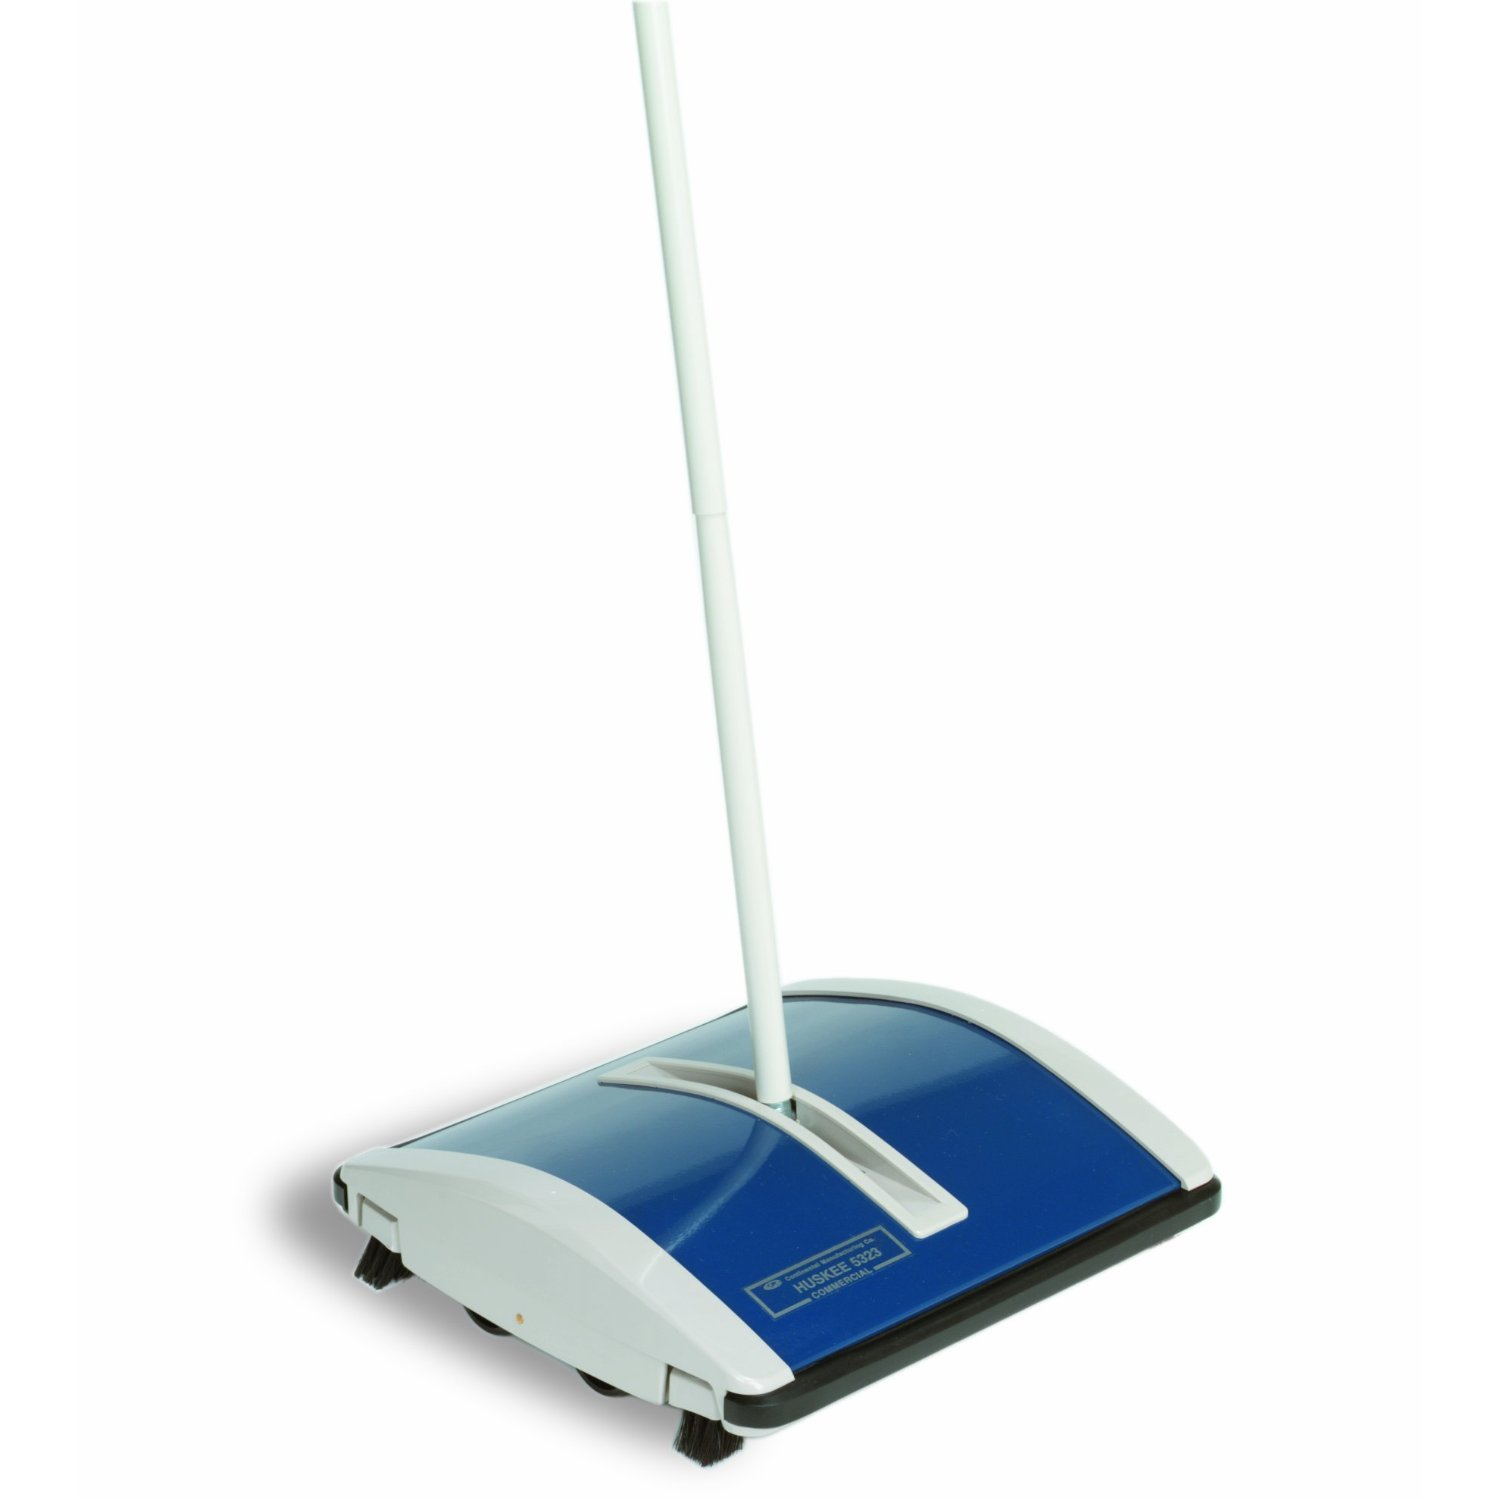 9 Blue Huskee Carpet Sweeper Wholesale Carpet Sweepers [CON 5323] - $94.95